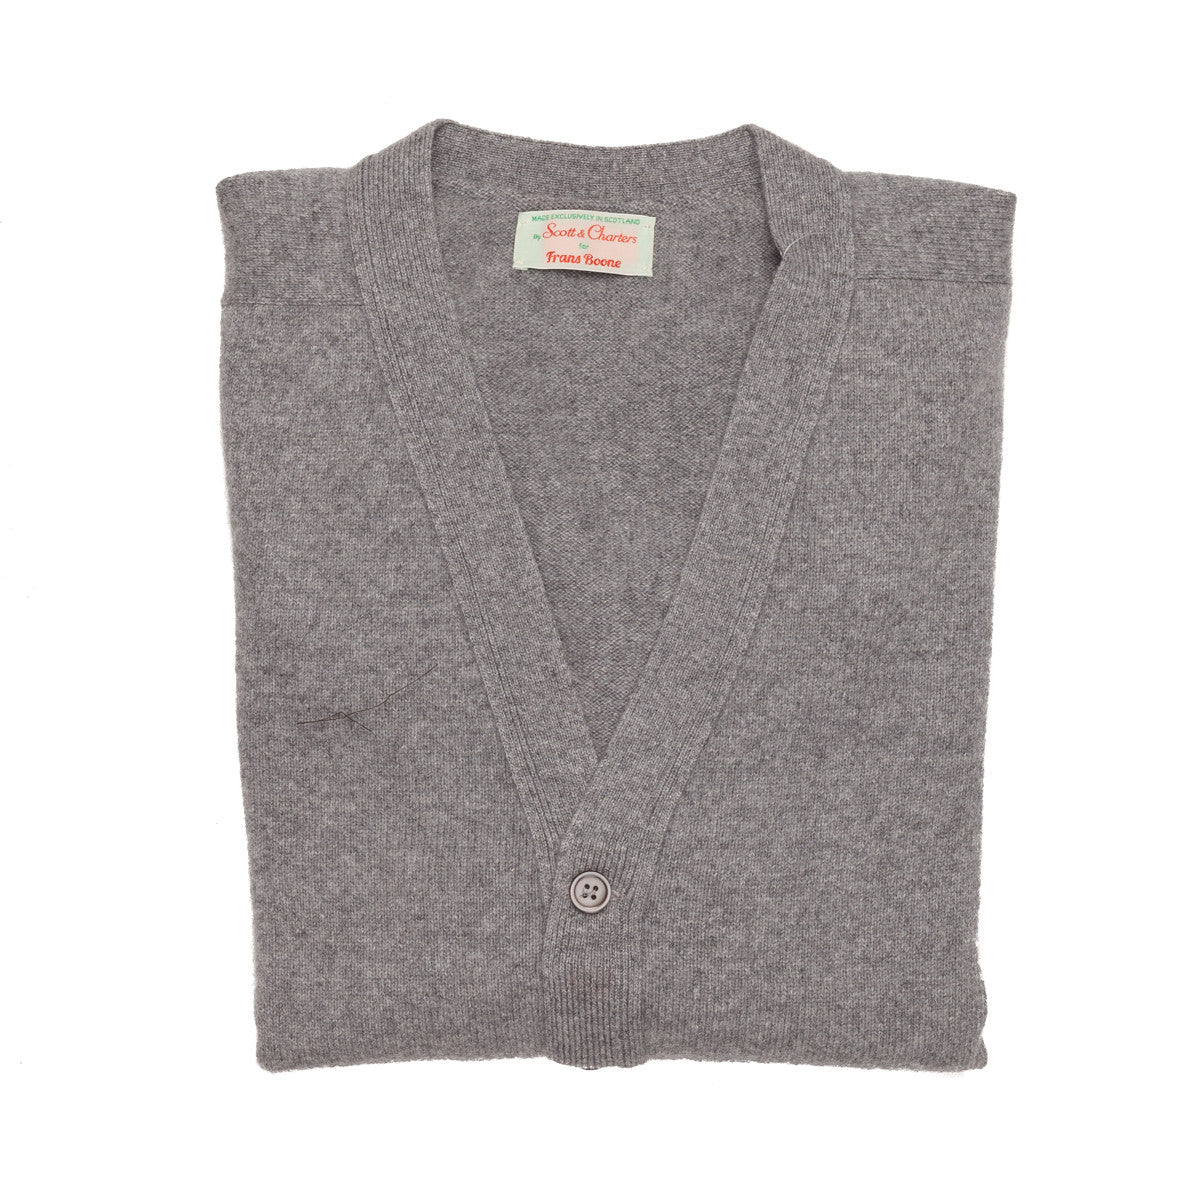 Scott and Charters x Frans Boone 100% cashmere cardigan Flannel Grey